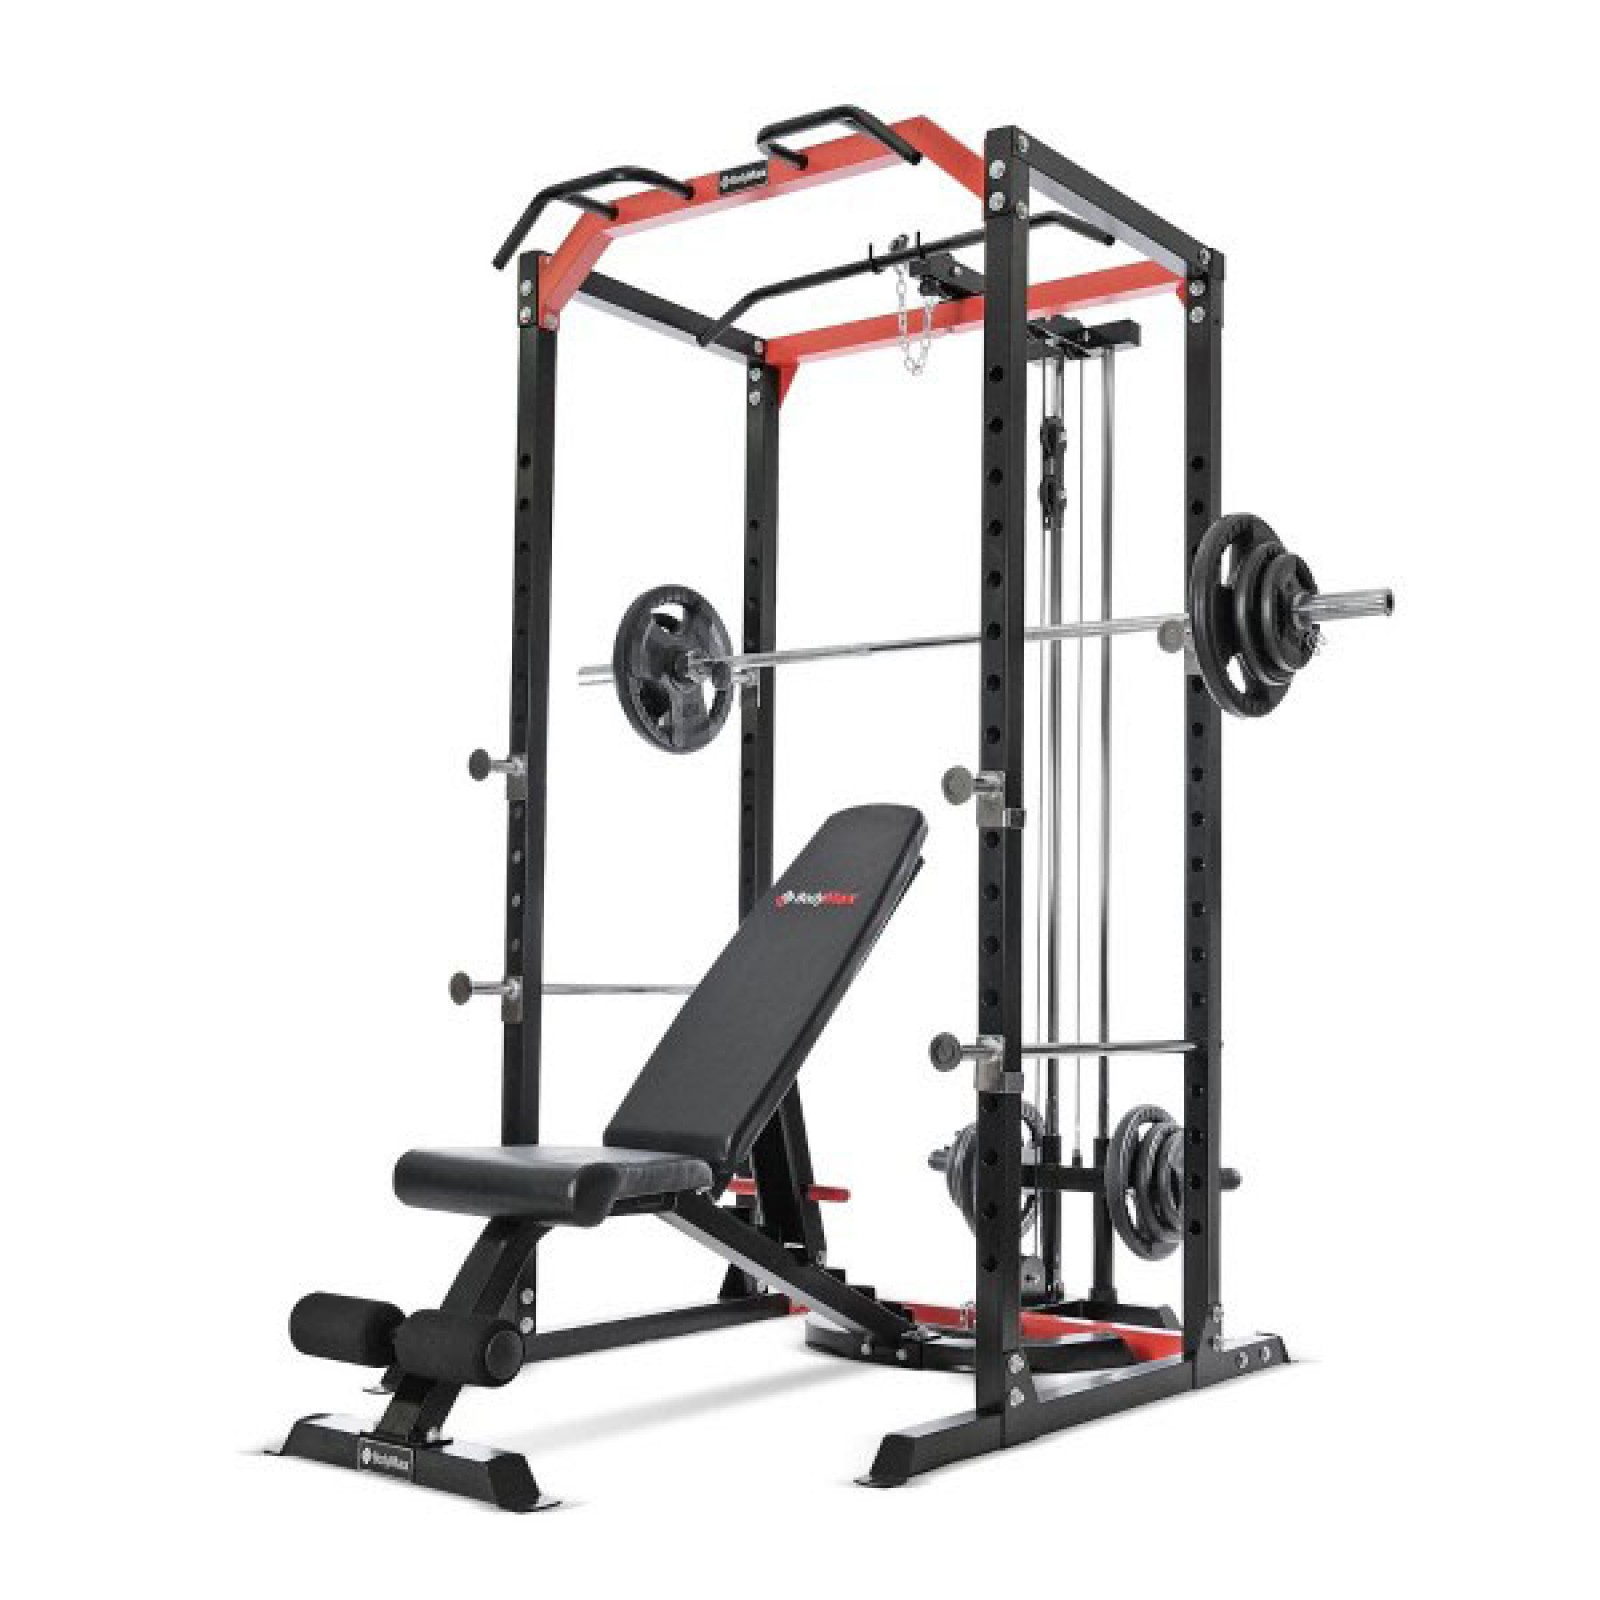 bodymax cf385 power rack cf328 utility bench 95kg rubber olympic weight kit disc loading pulley system